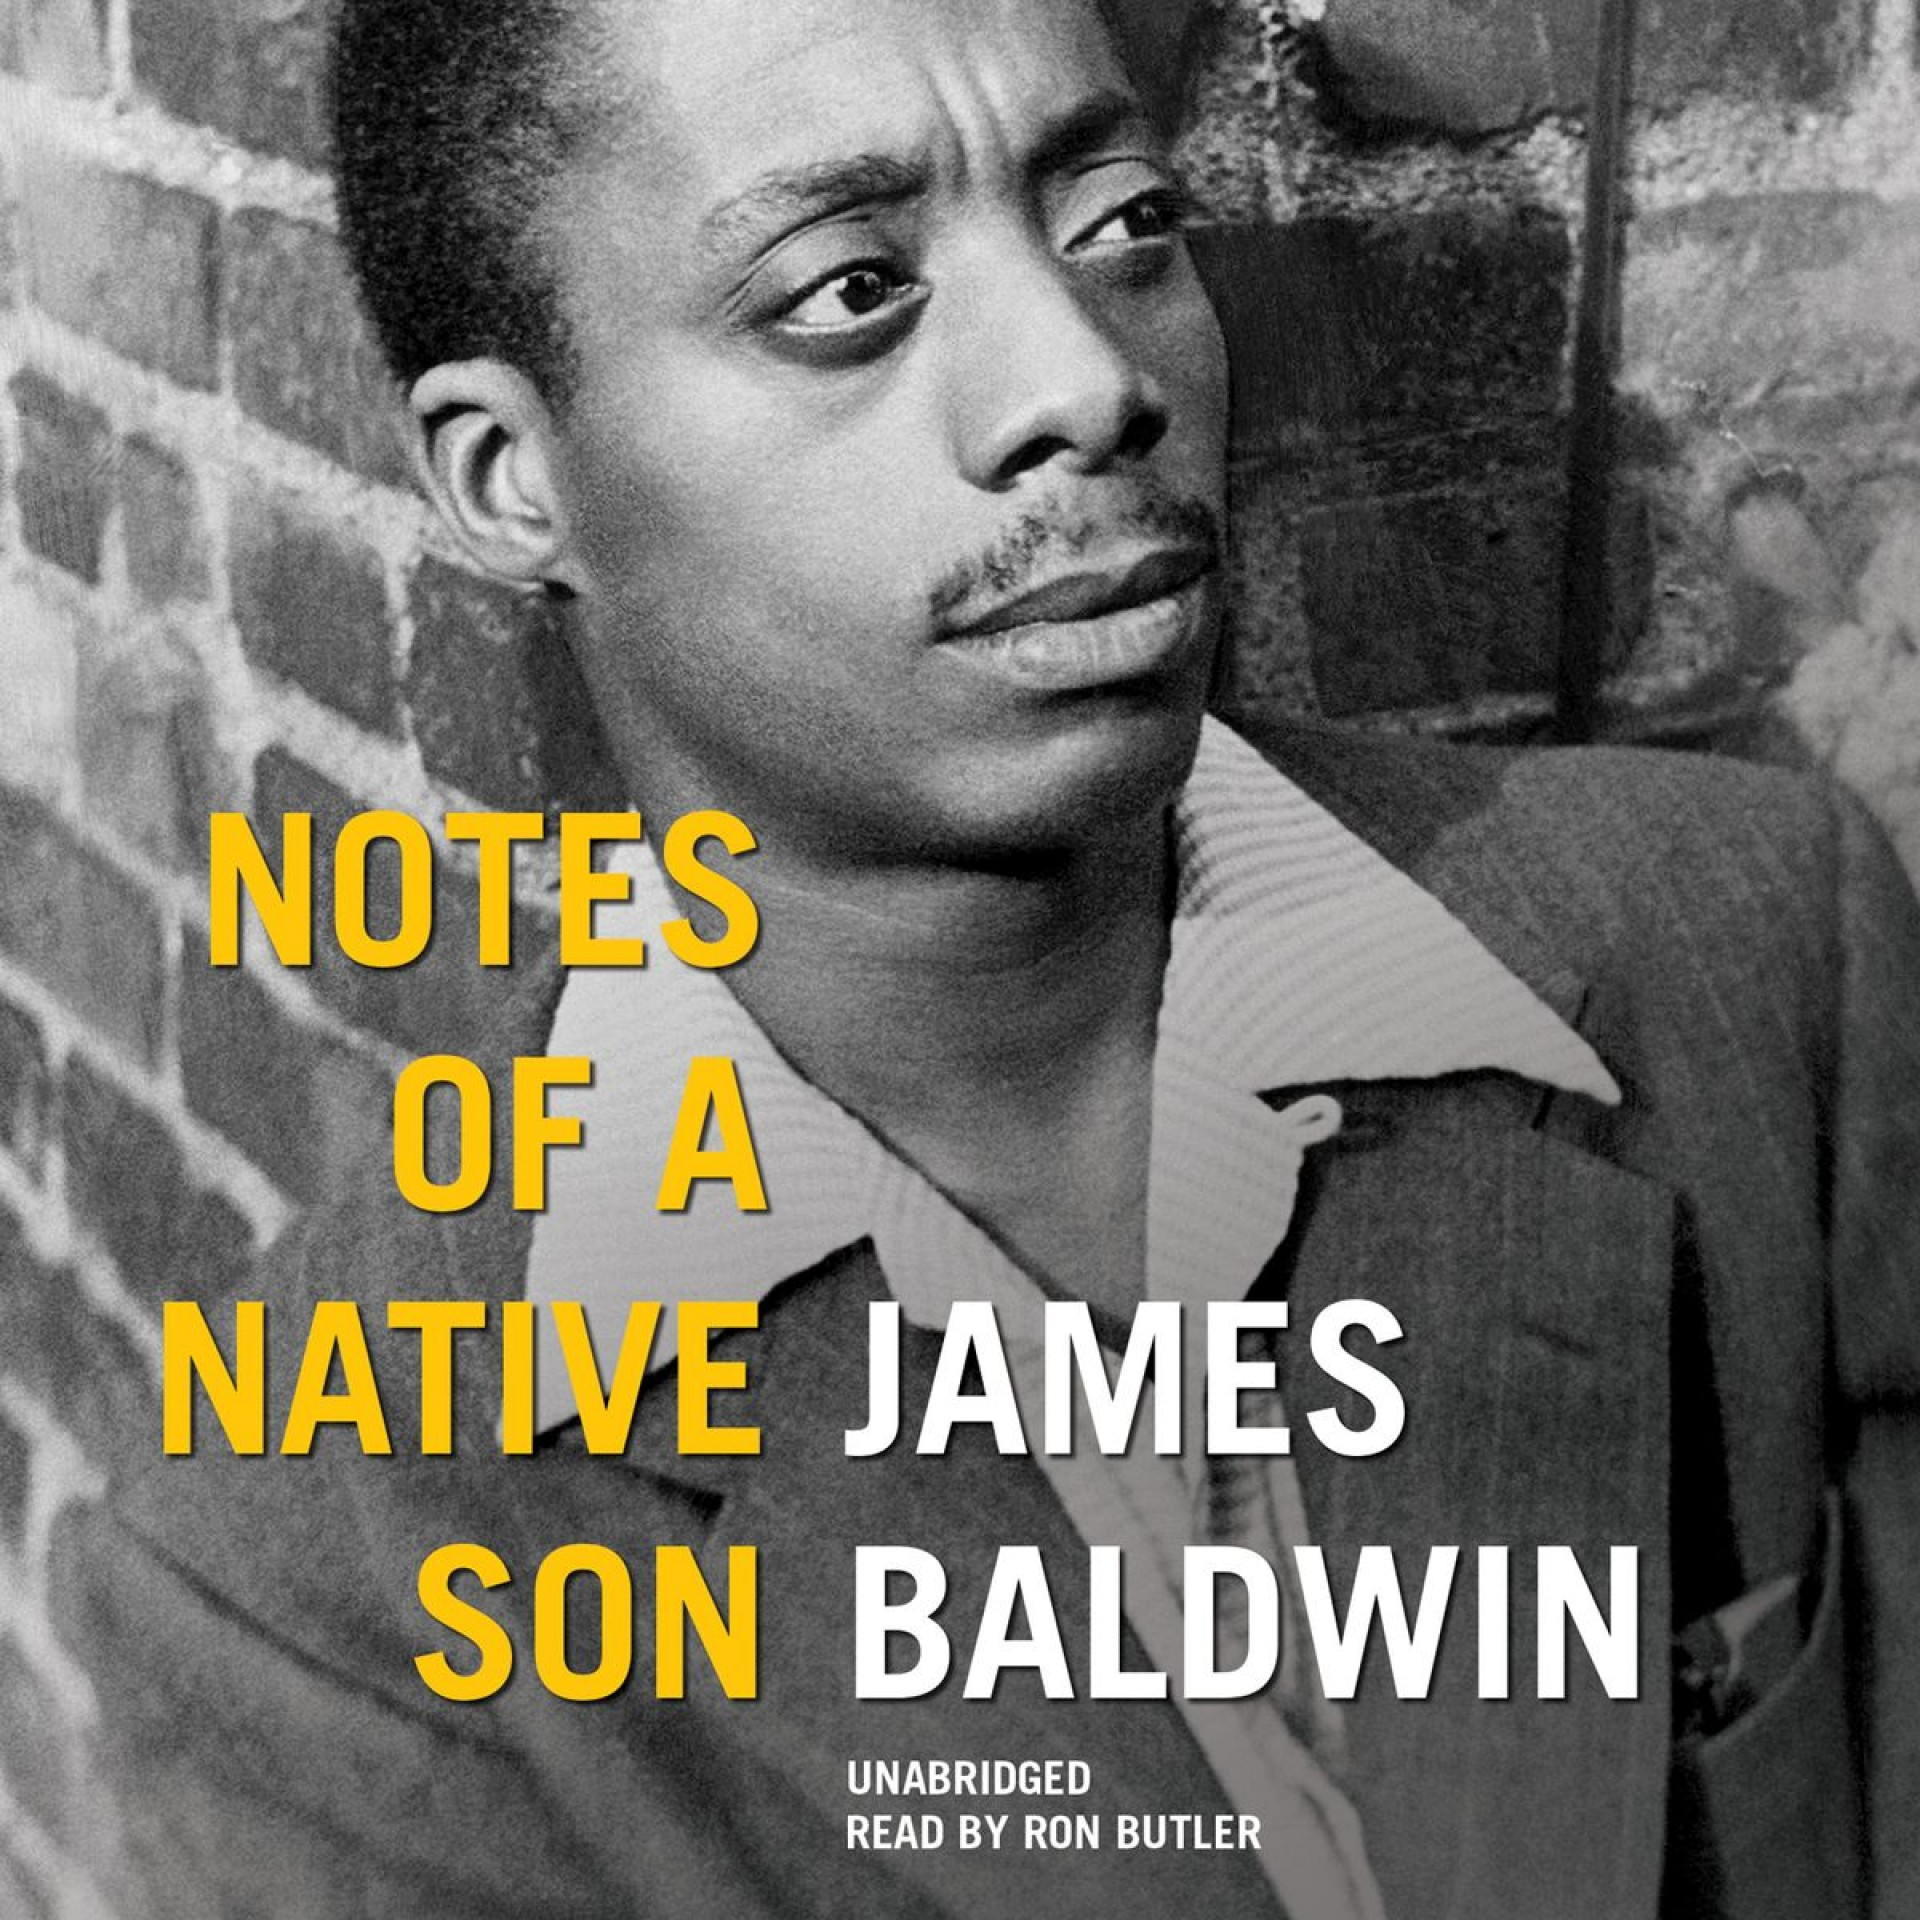 018 Essay Example James Baldwin Collected Essays Notes Of Native Son Wondrous Table Contents Ebook Google Books 1920